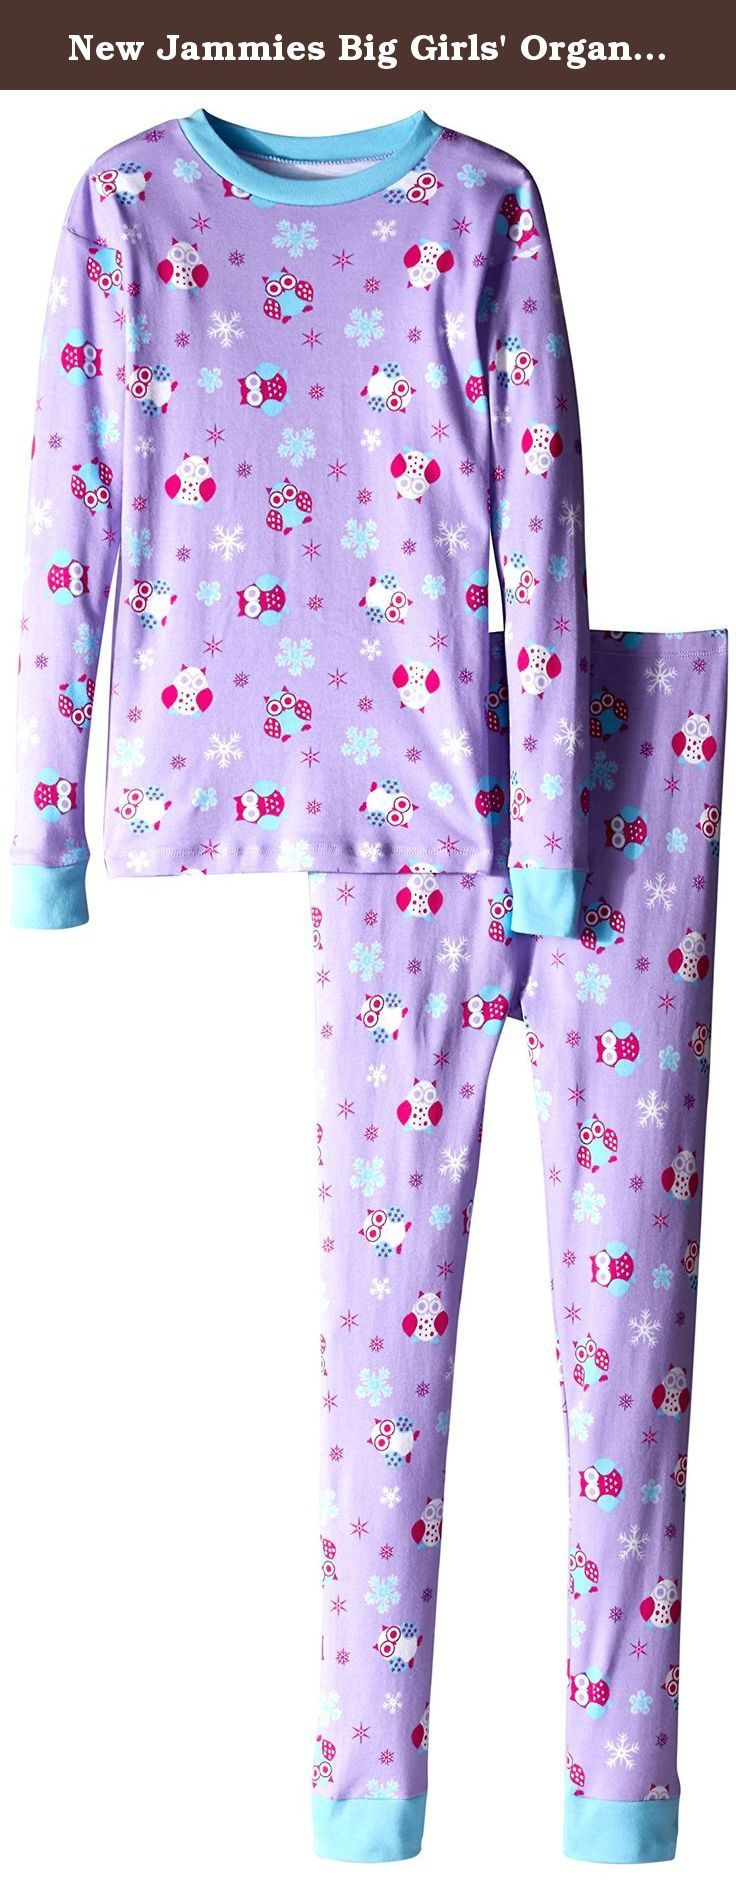 new jammies big girls' organic cotton snuggly pajamas snow owl   - new jammies big girls' organic cotton snuggly pajamas snow owl  our